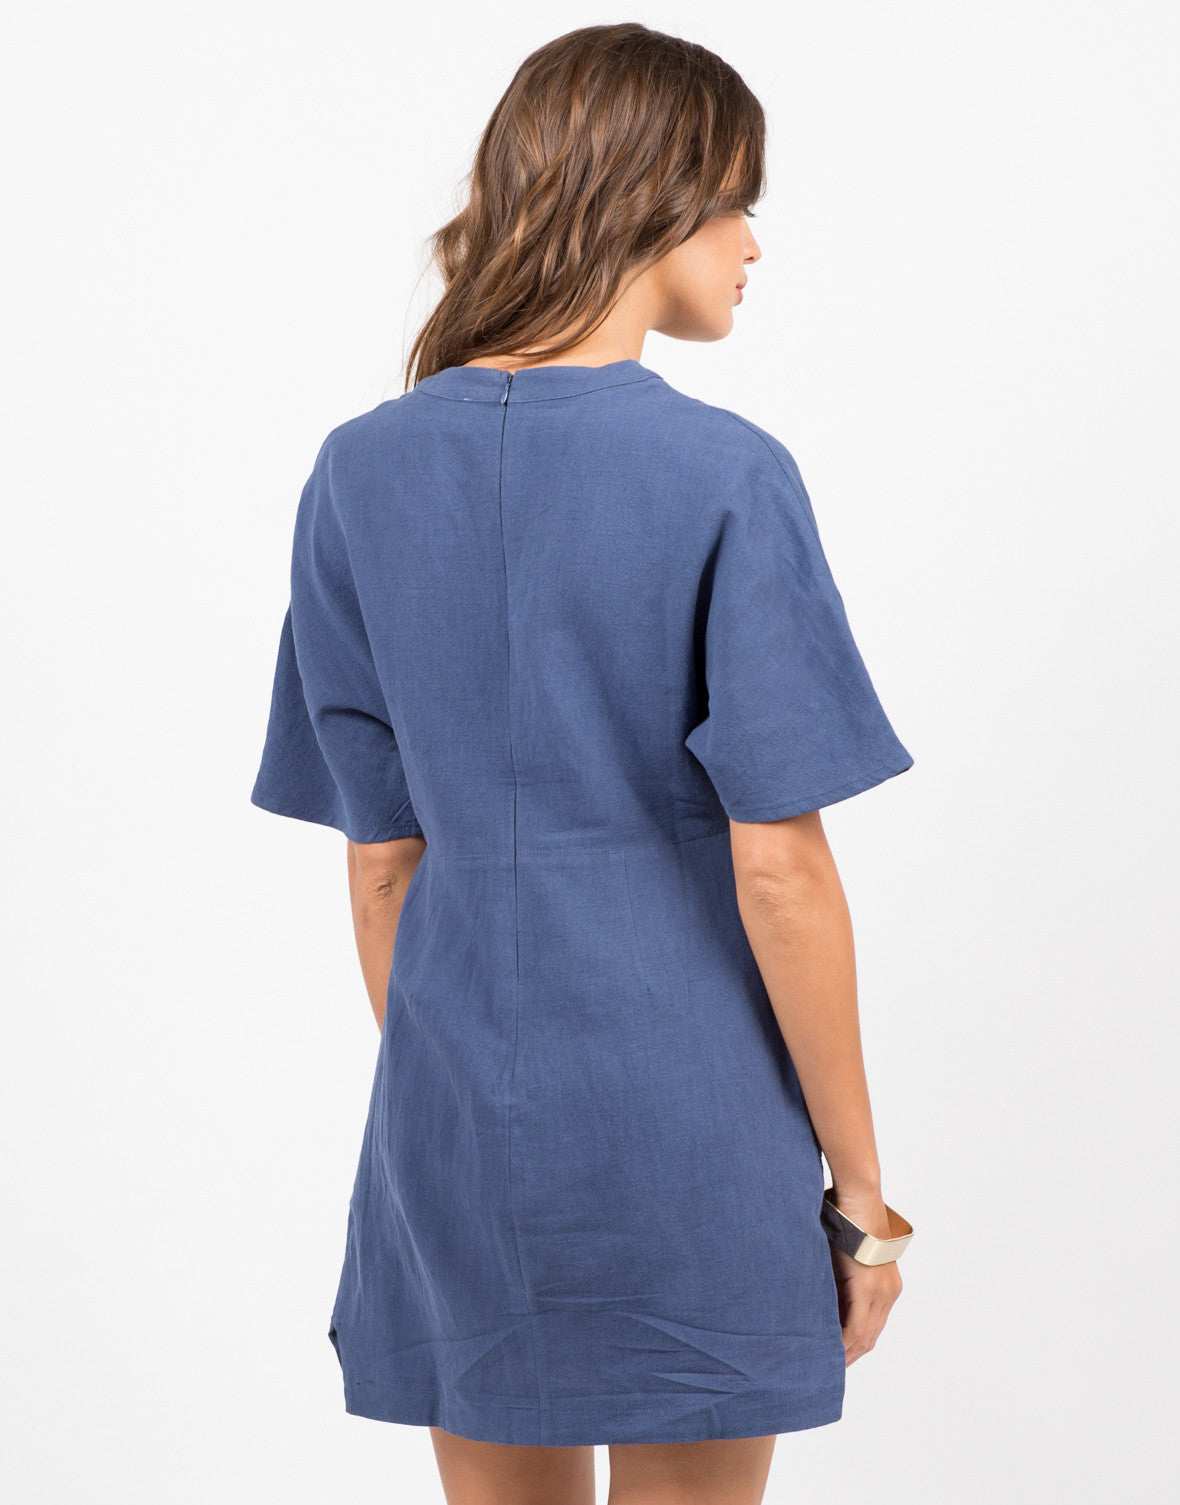 Back View of Double Pocket T-Shirt Dress